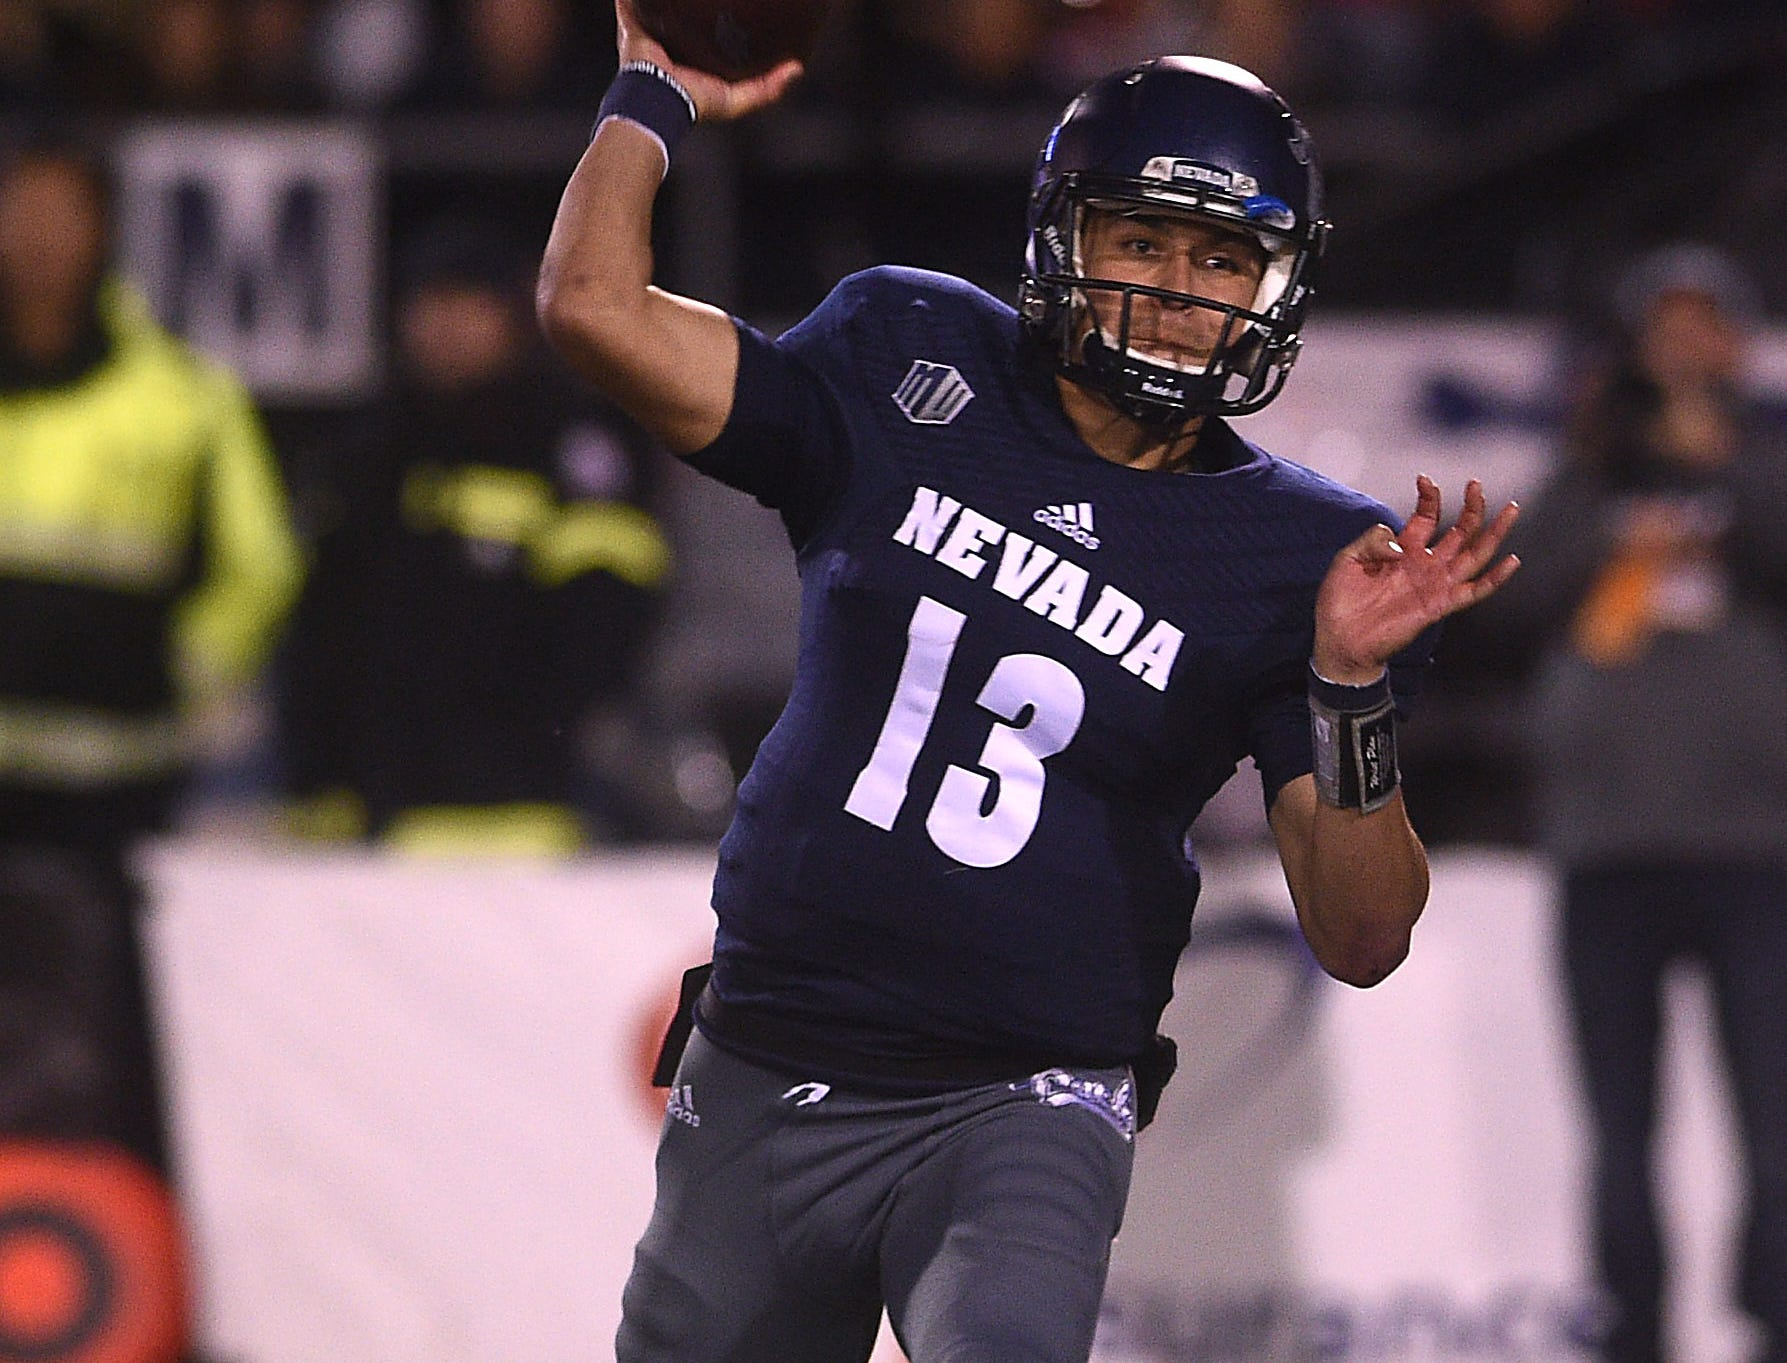 Nevada's Cristian Solano (13) makes a pass while taking on Fresno St. during their football game at Mackay Stadium in Reno on Oct. 6, 2018.